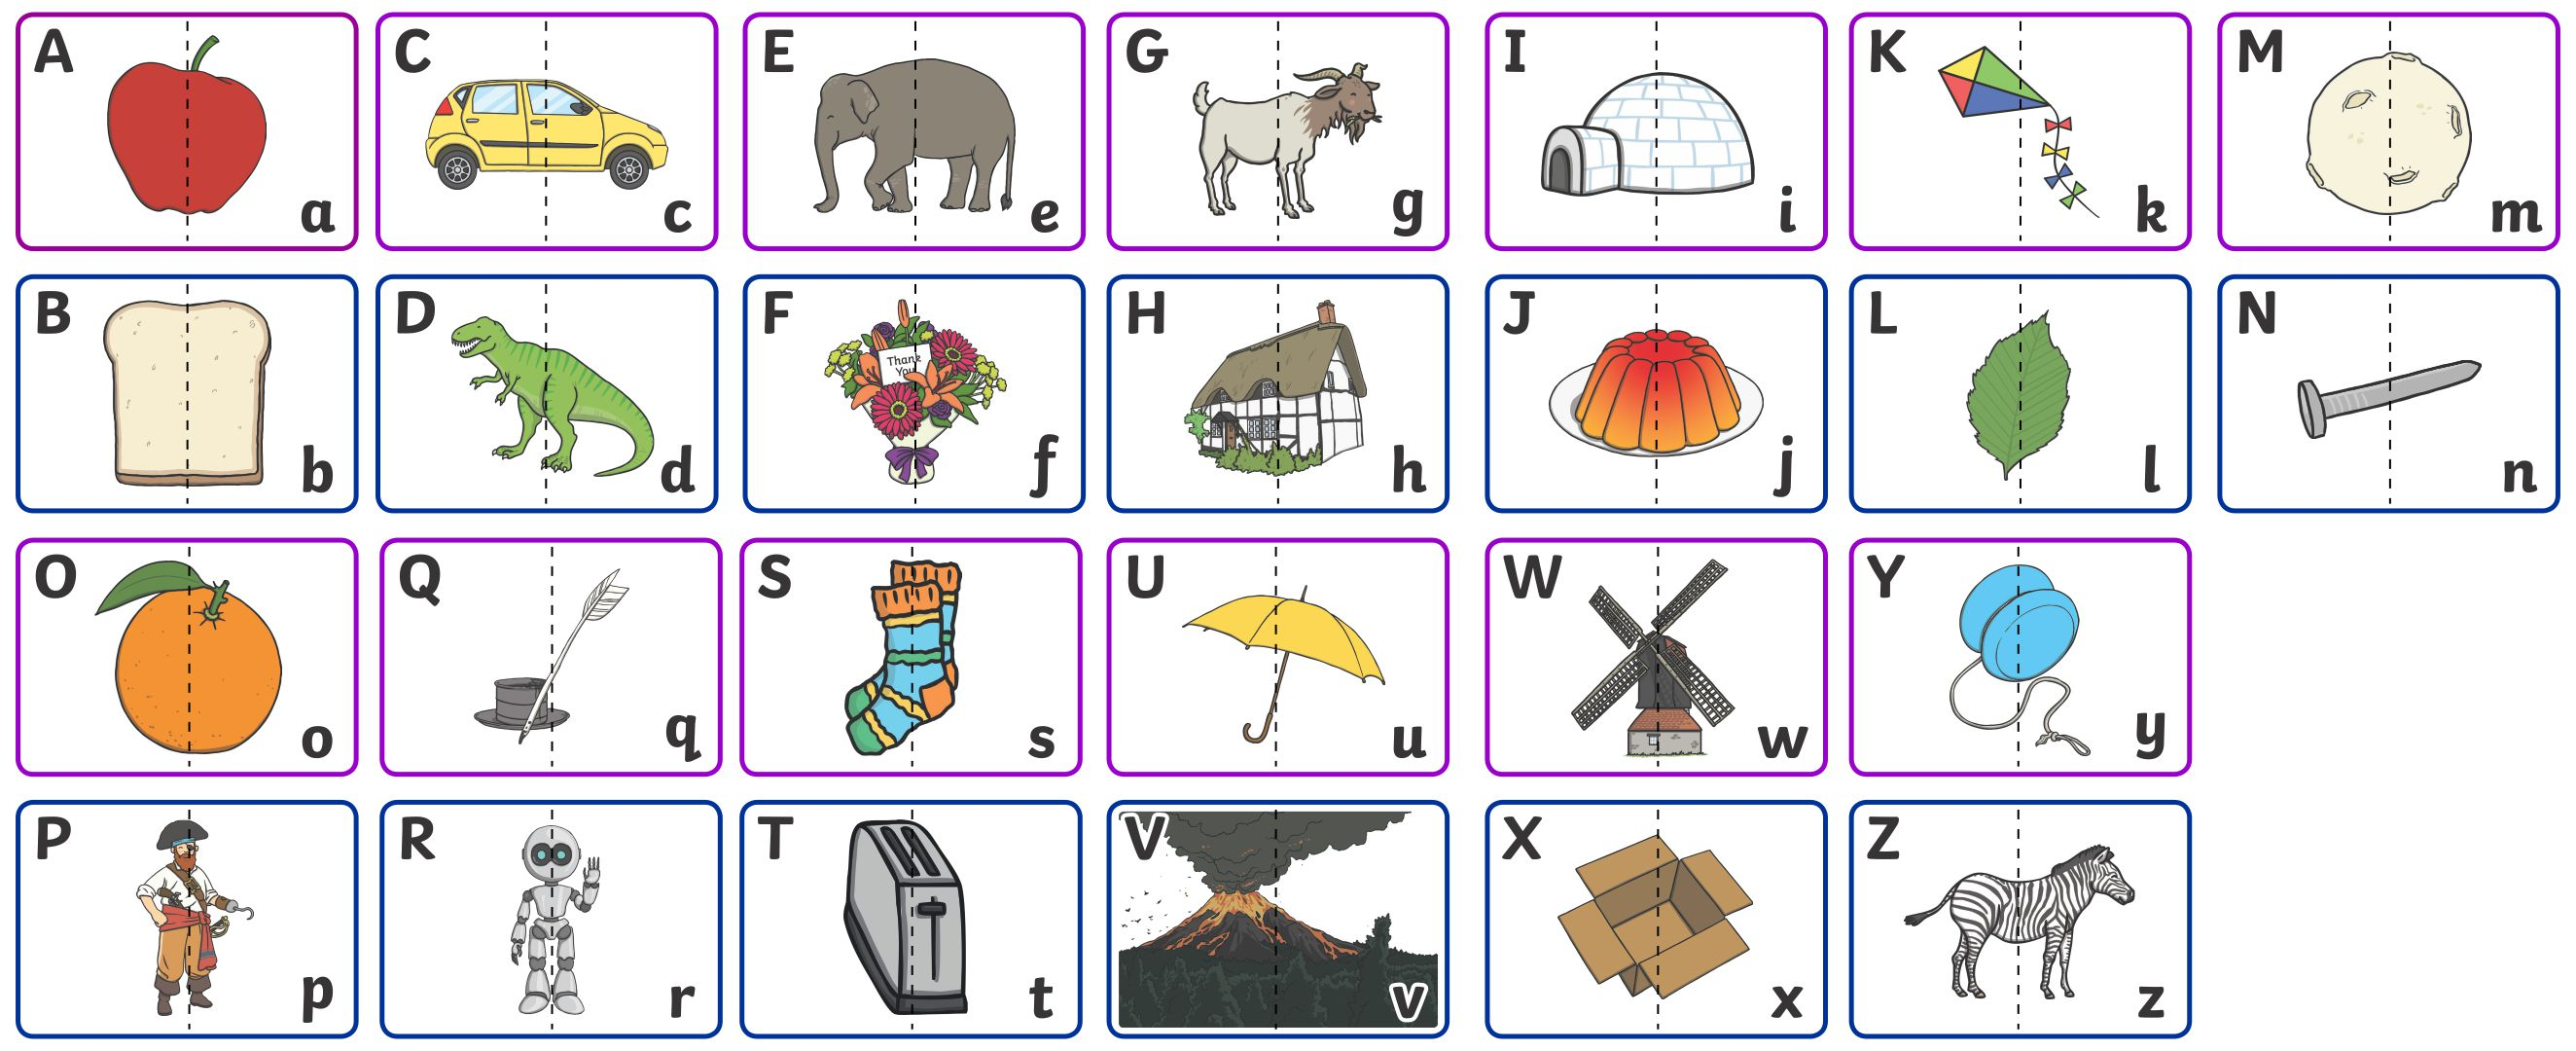 Uppercase Lowercase Letters Worksheet